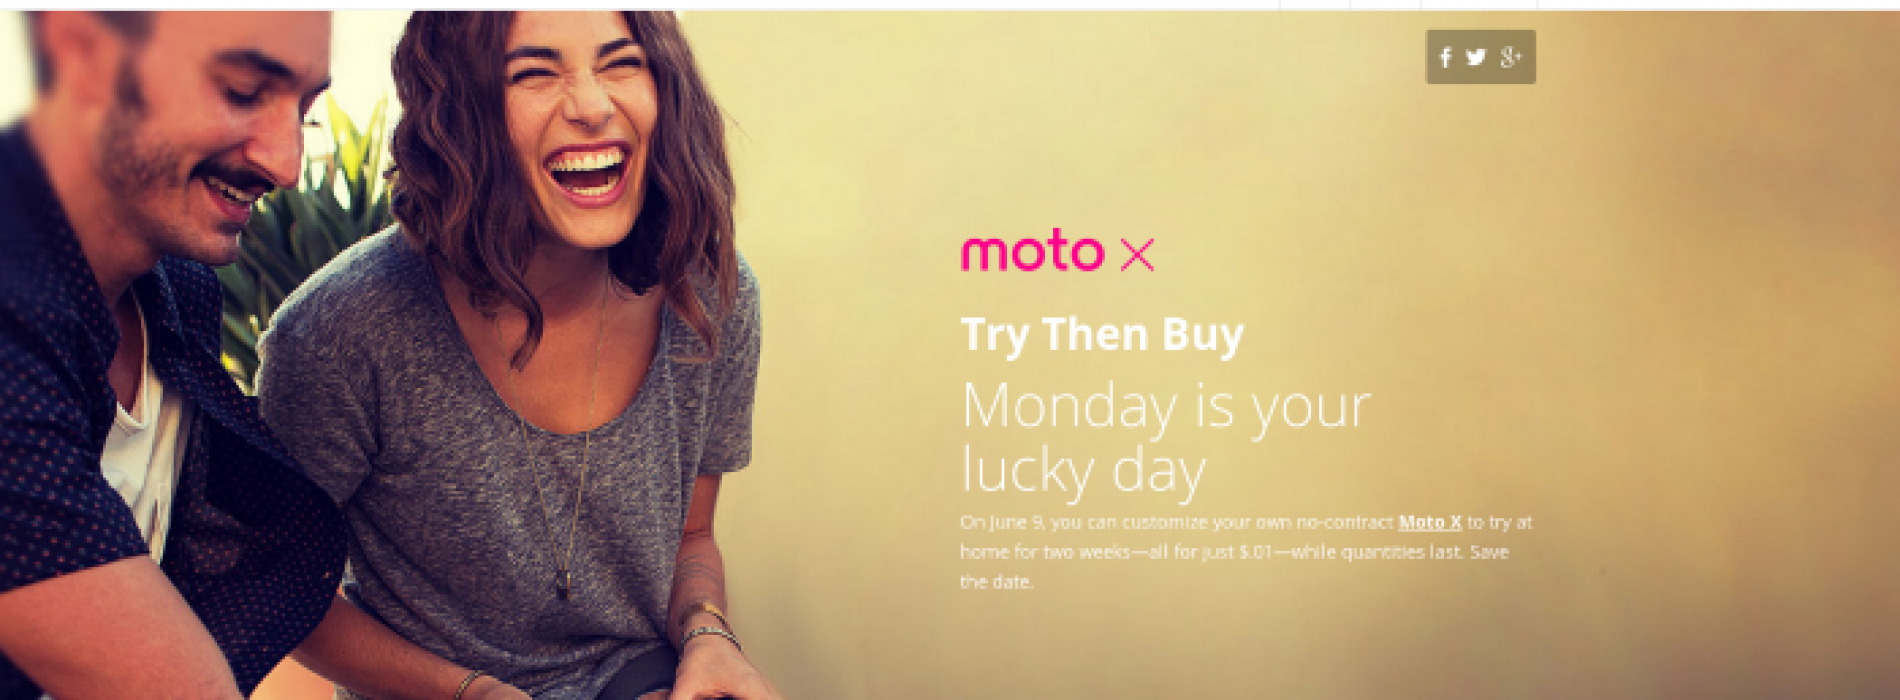 """Motorola schedules 24 hour """"Try Then Buy"""" promotion for Moto X on June 9"""